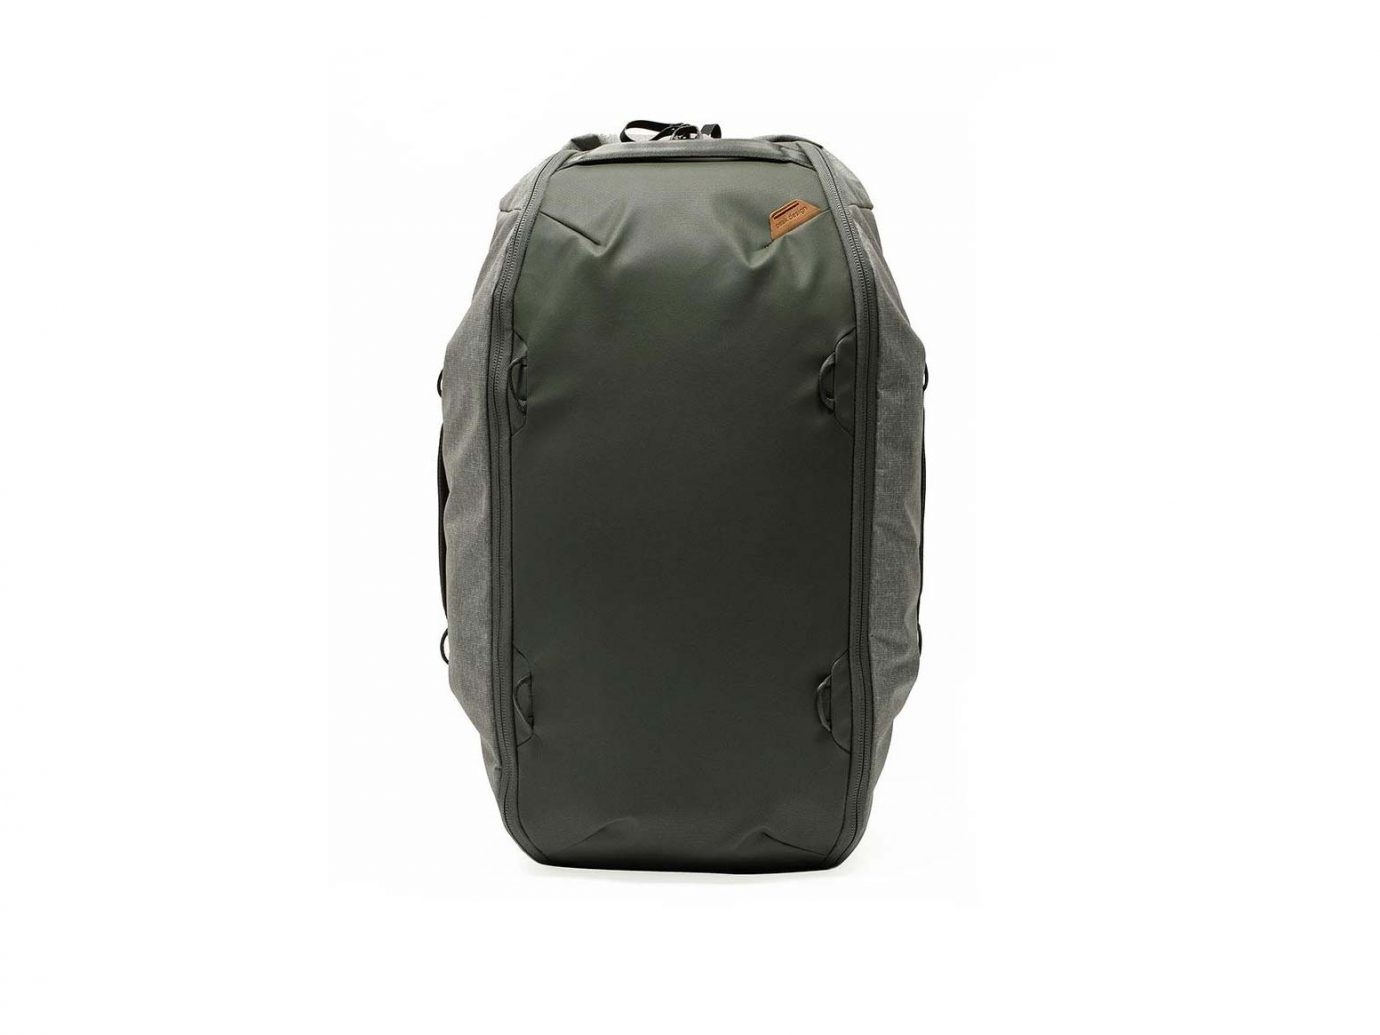 Peak Travel Duffel Pack